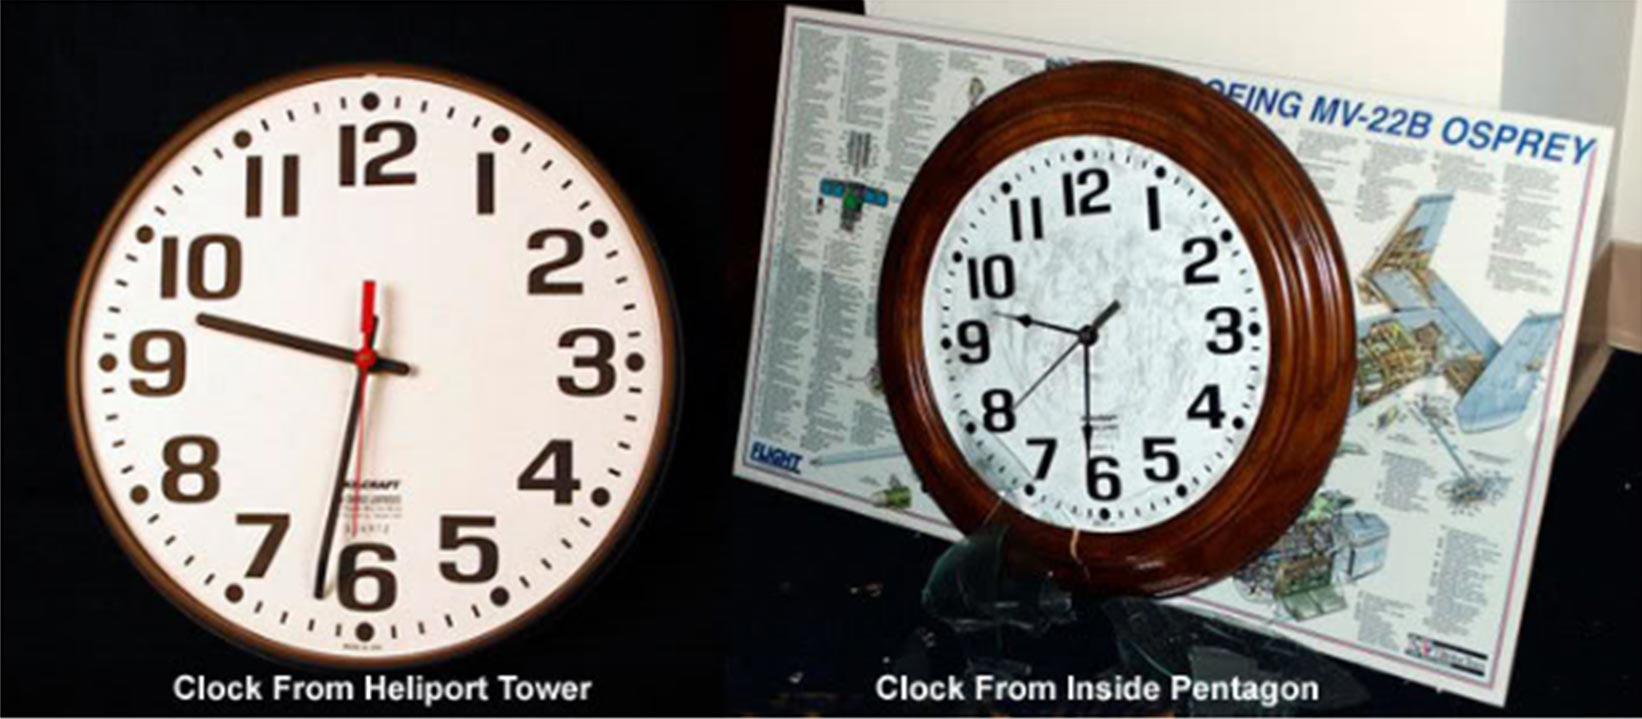 >Fig. 3. Some of the west section Pentagon wall clocks stopped shortly after 9:30 on Sept. 11. consistent with the early media reports (see below). The clock on the left, from the heliport firehouse located outside the west wall, is in the Smithsonian Institution's 9/11 exhibit.